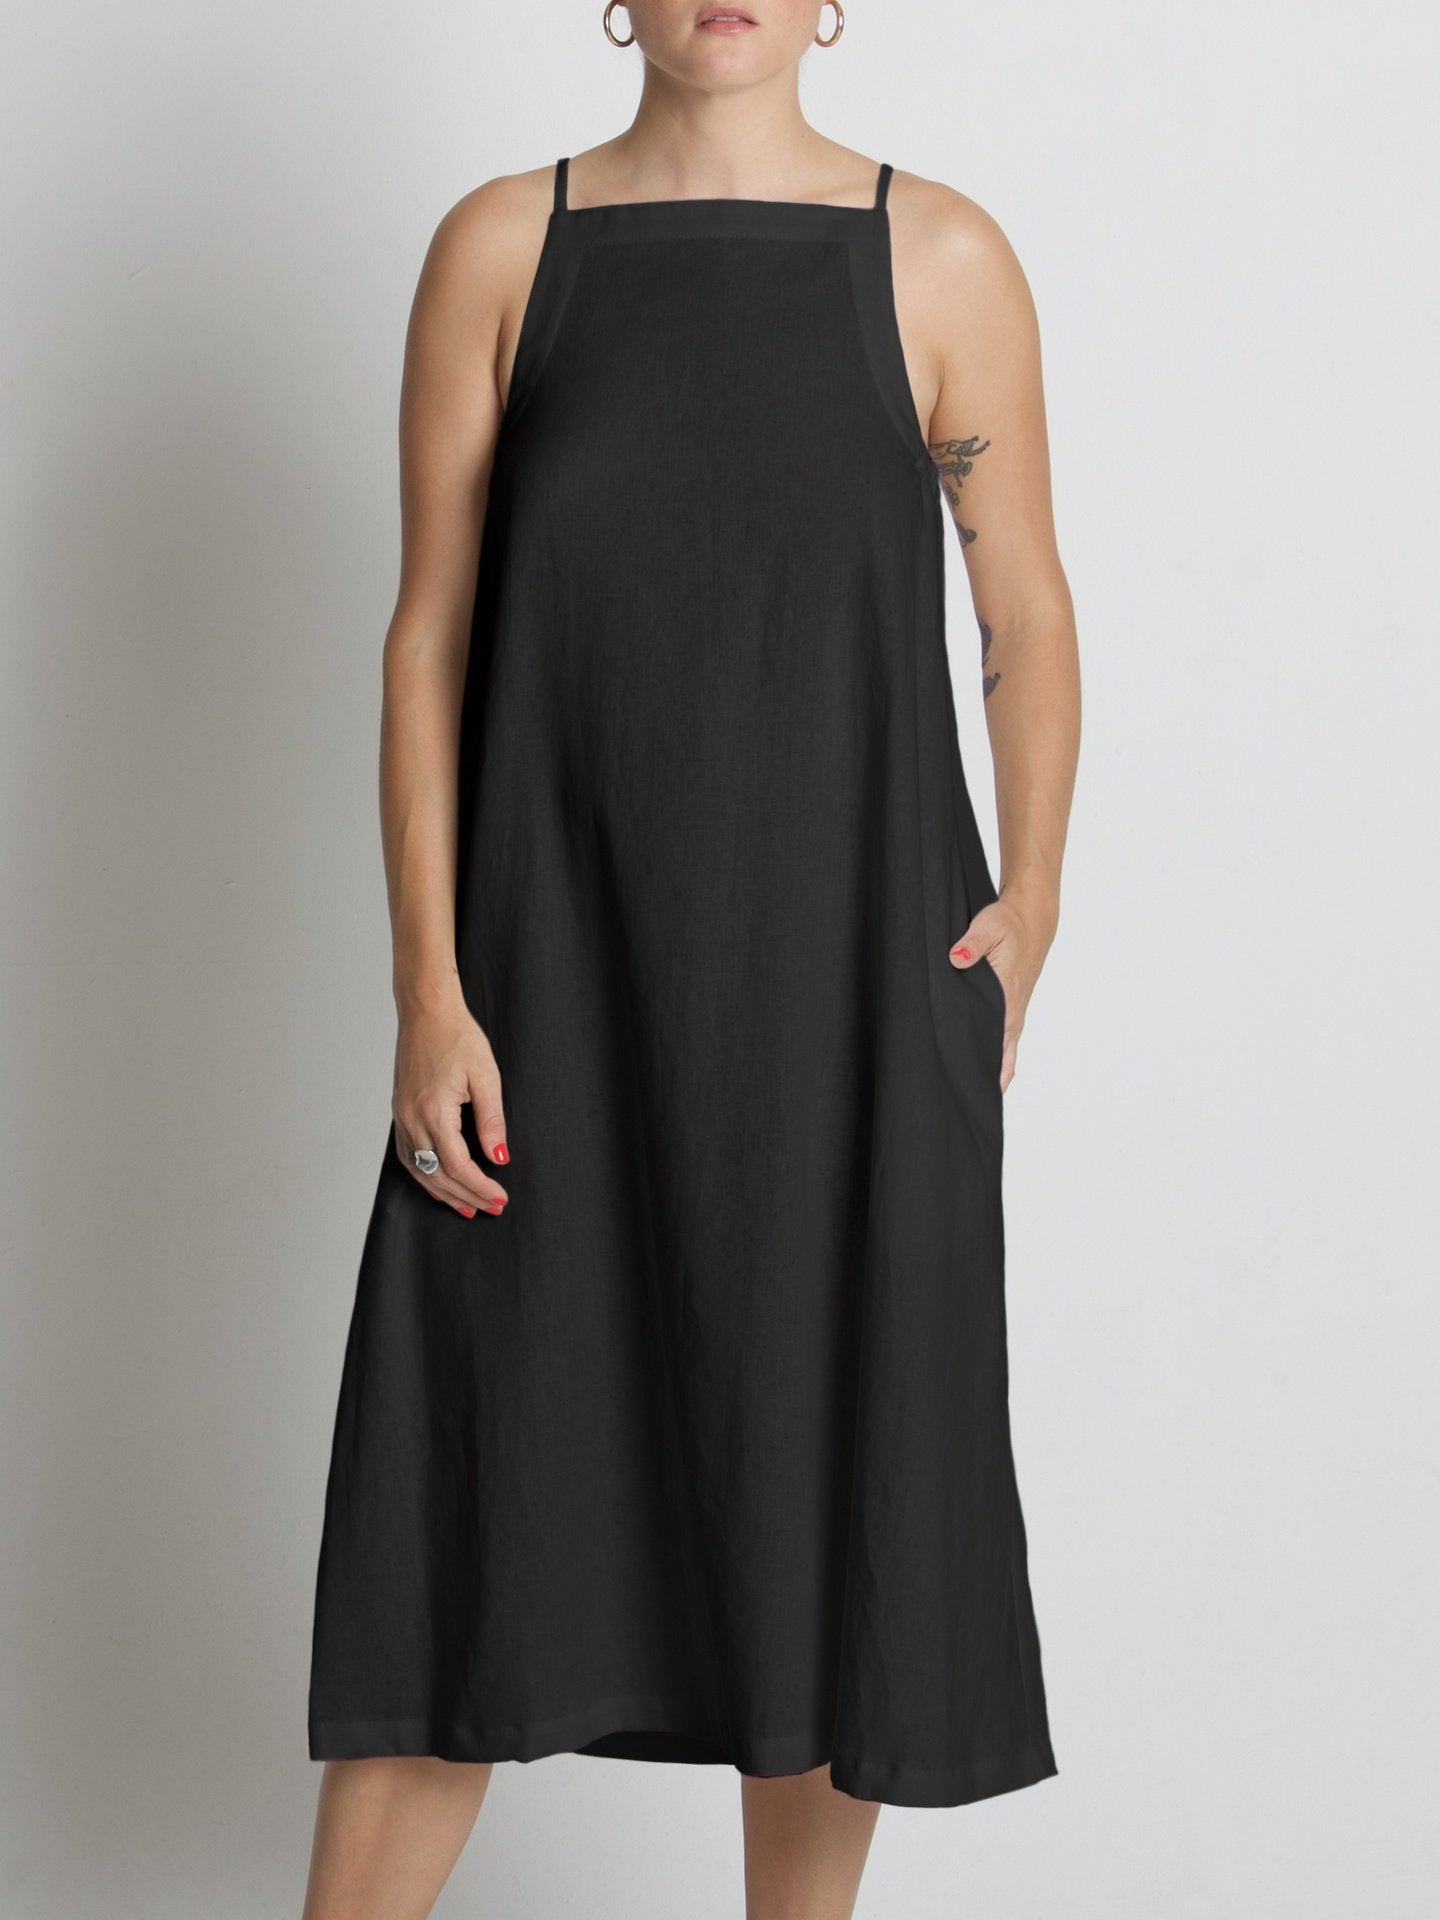 Yard Dress / Black Linen